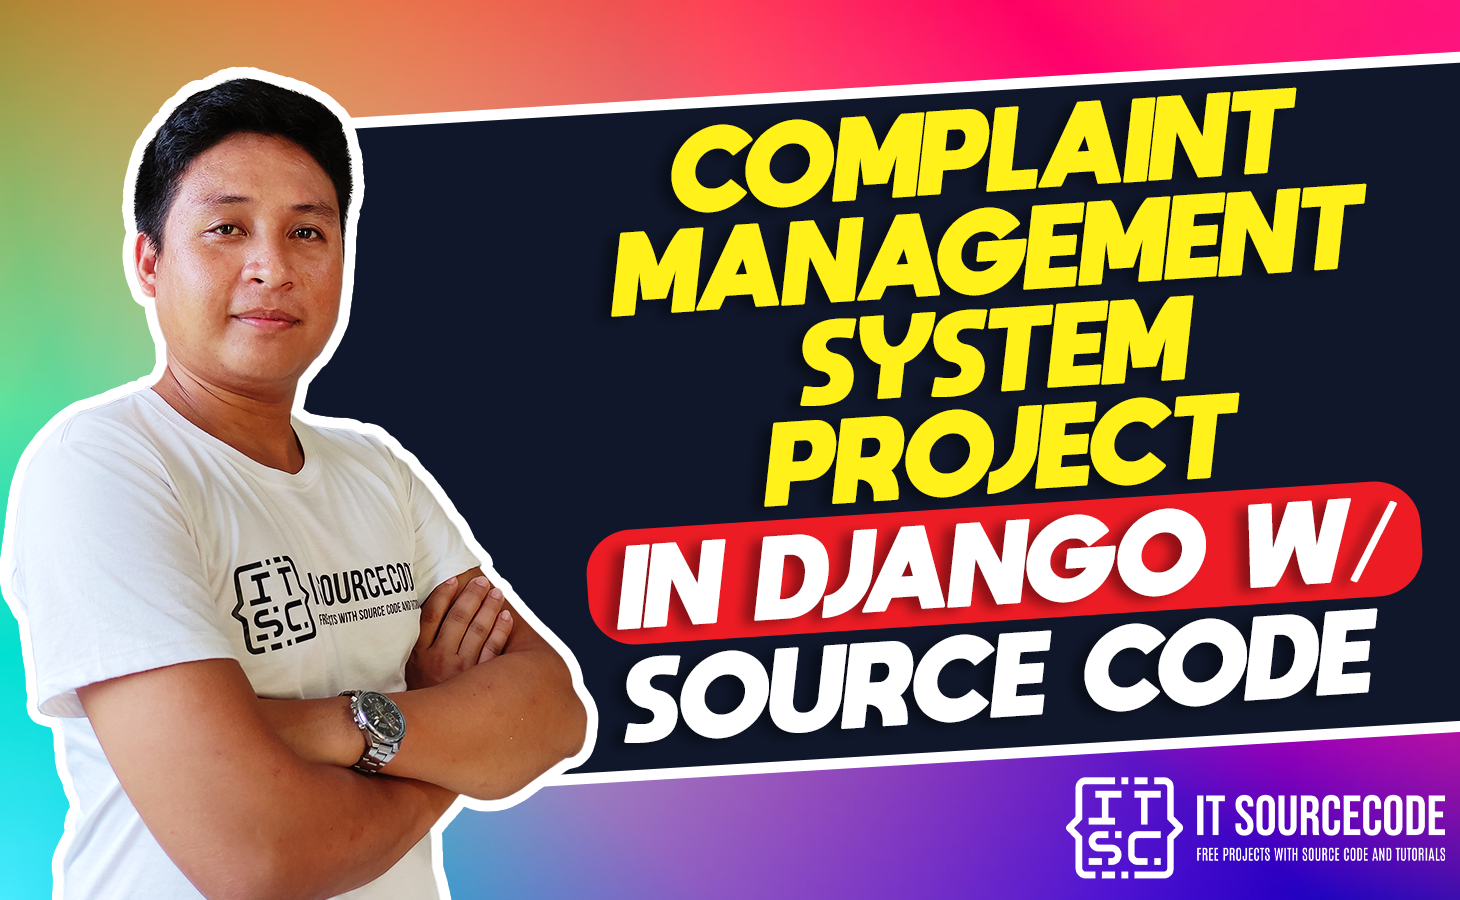 Complaint Management System Project in Django with Source Code